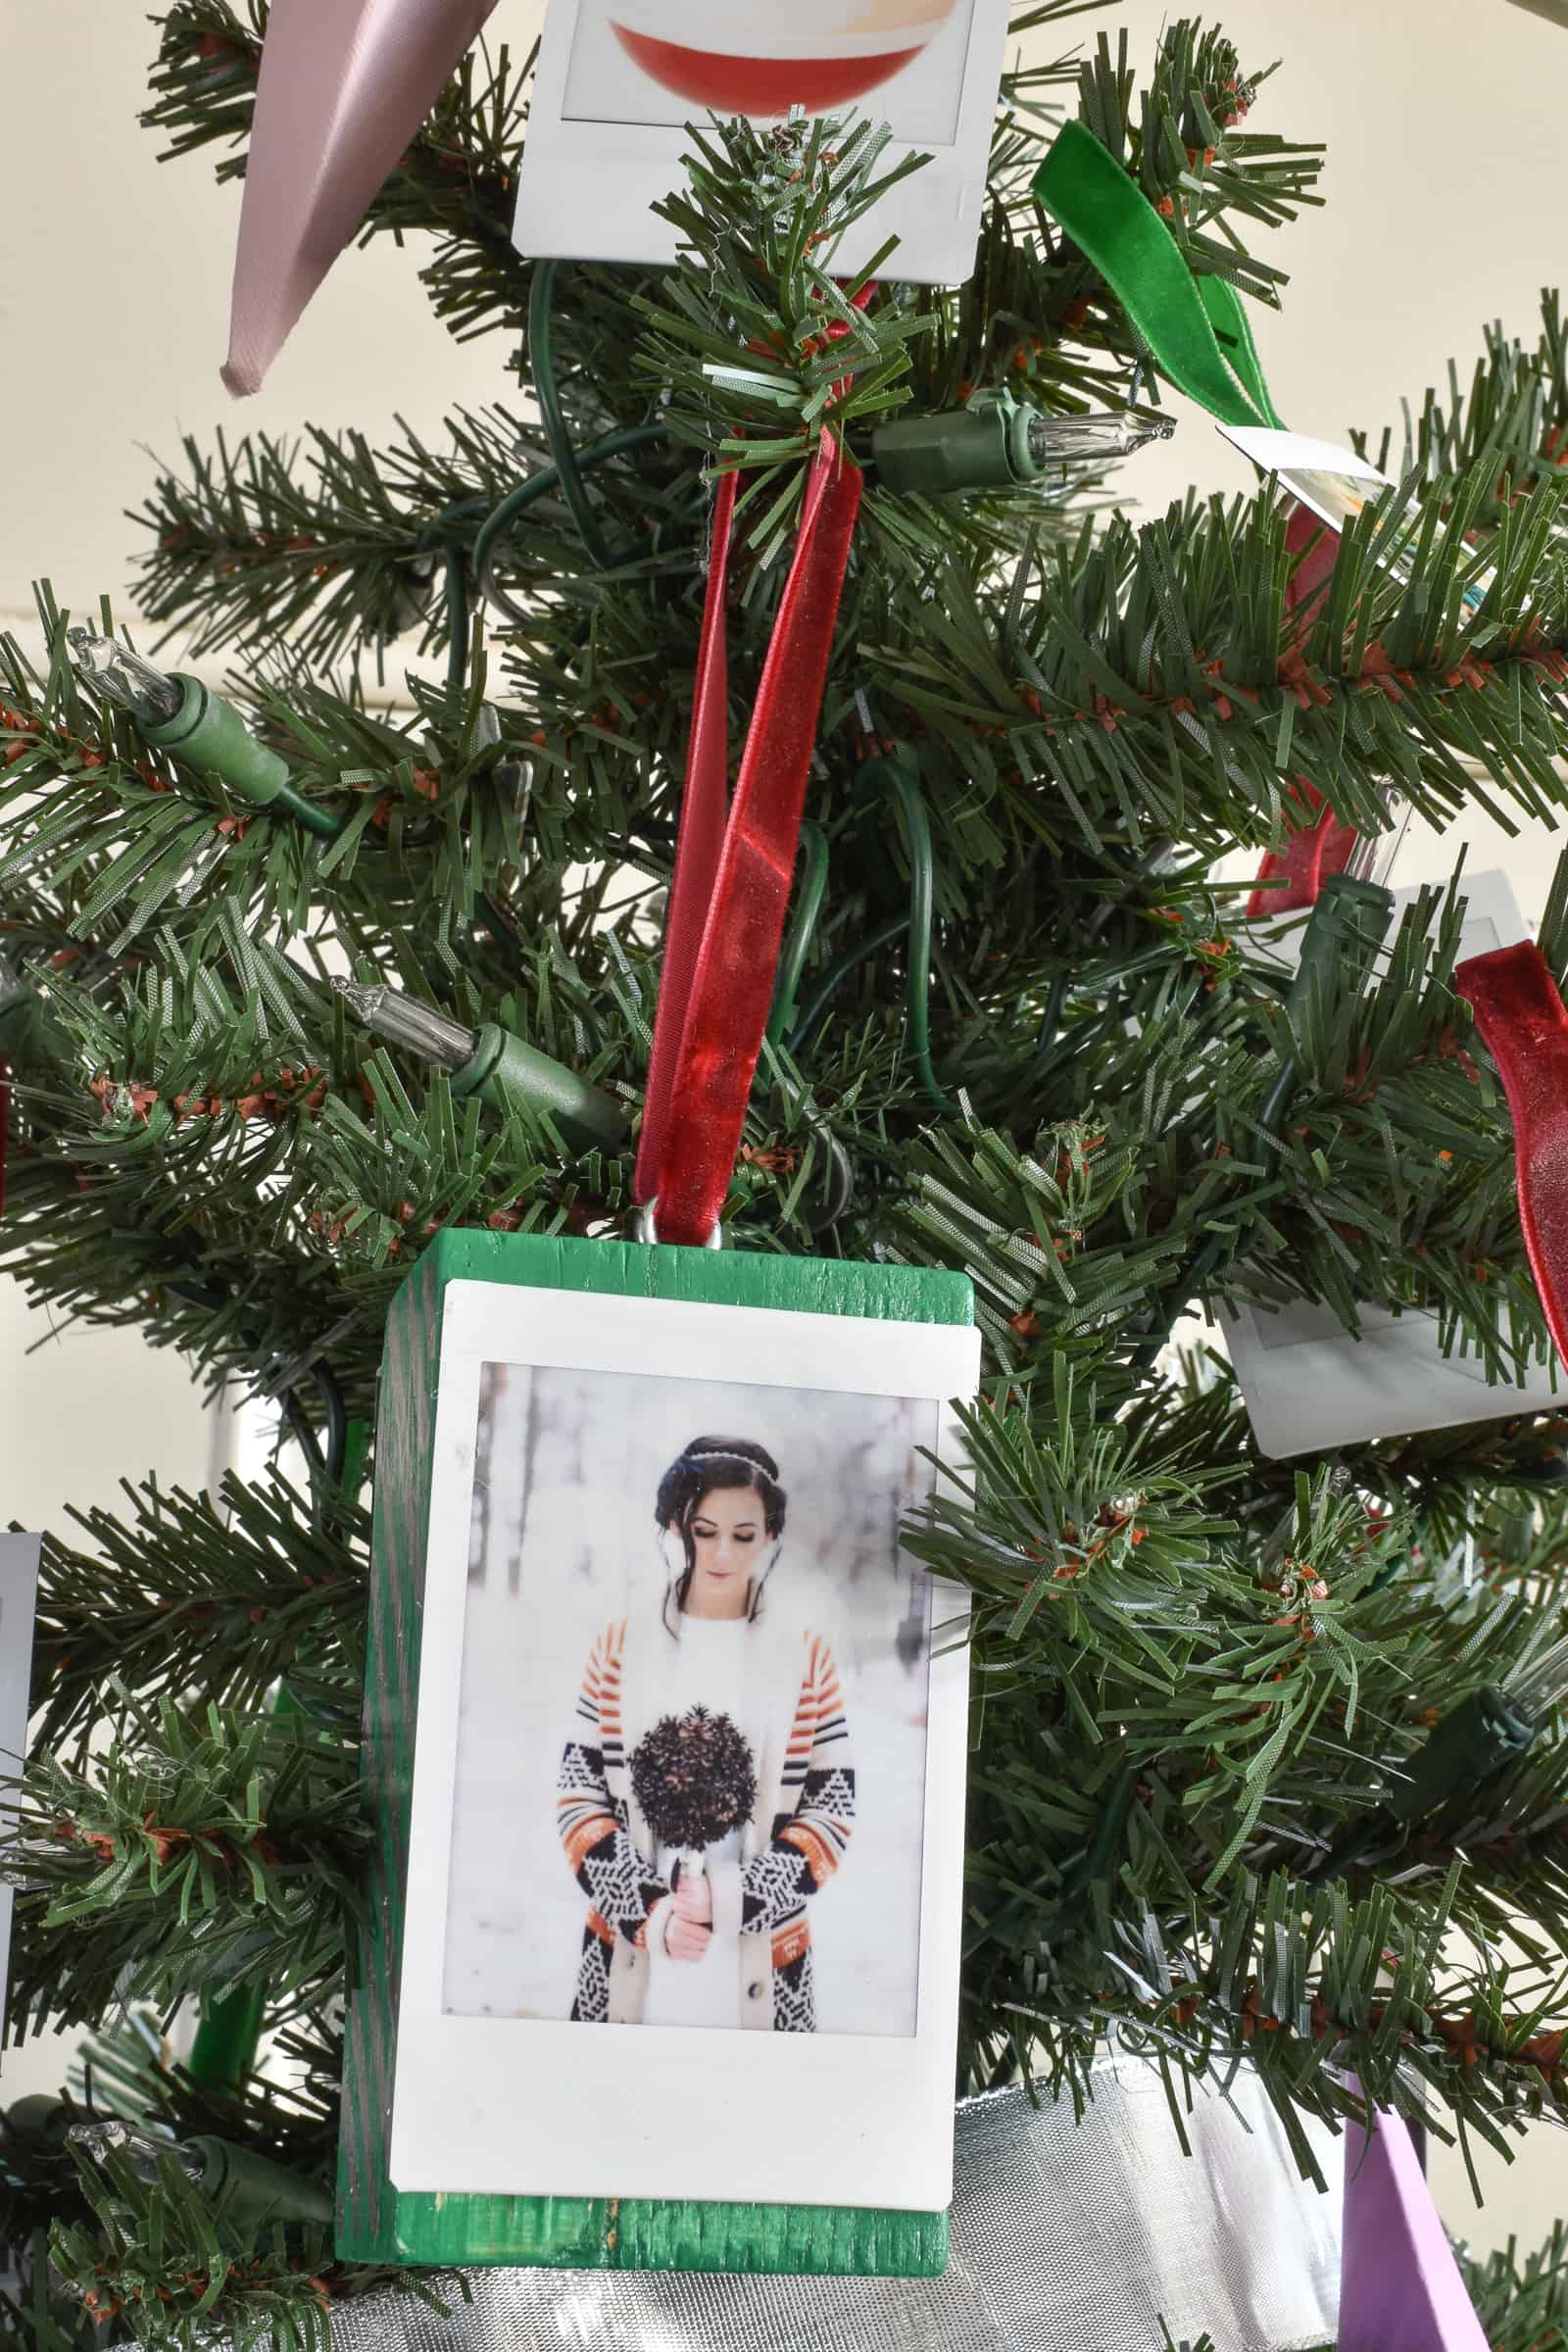 instax film as christmas ornament